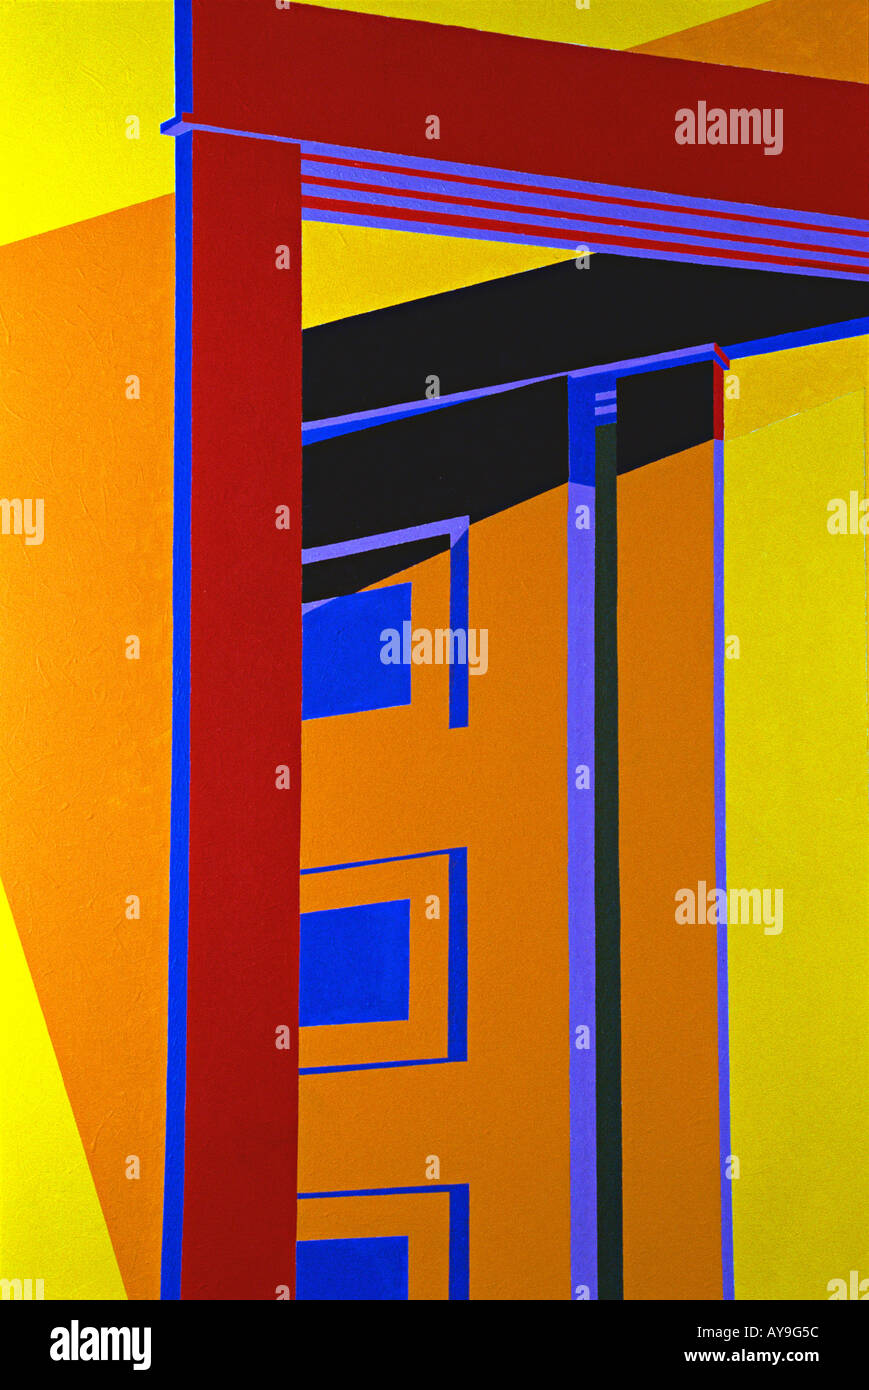 Abstract close up of painting in primary colors of red, blue, green, yellow lines forming squares rectangles and Stock Photo